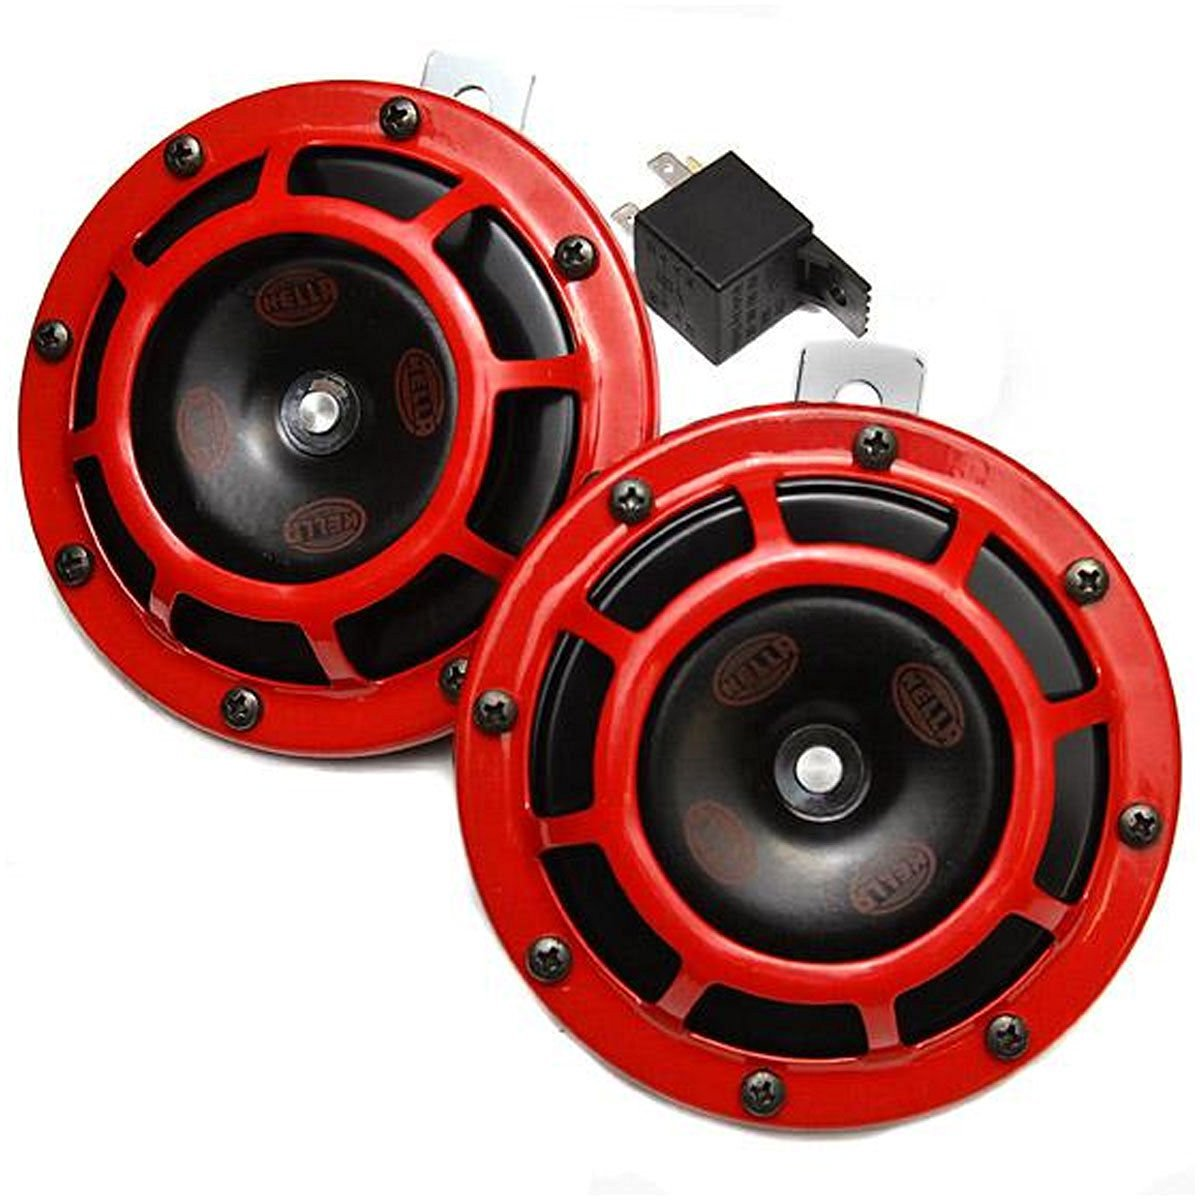 HELLA Supertone Universal 12V High Tone / Low Tone Twin Horn Kit (Red) / Shipping through DHL(Delivery within 4-5 days)